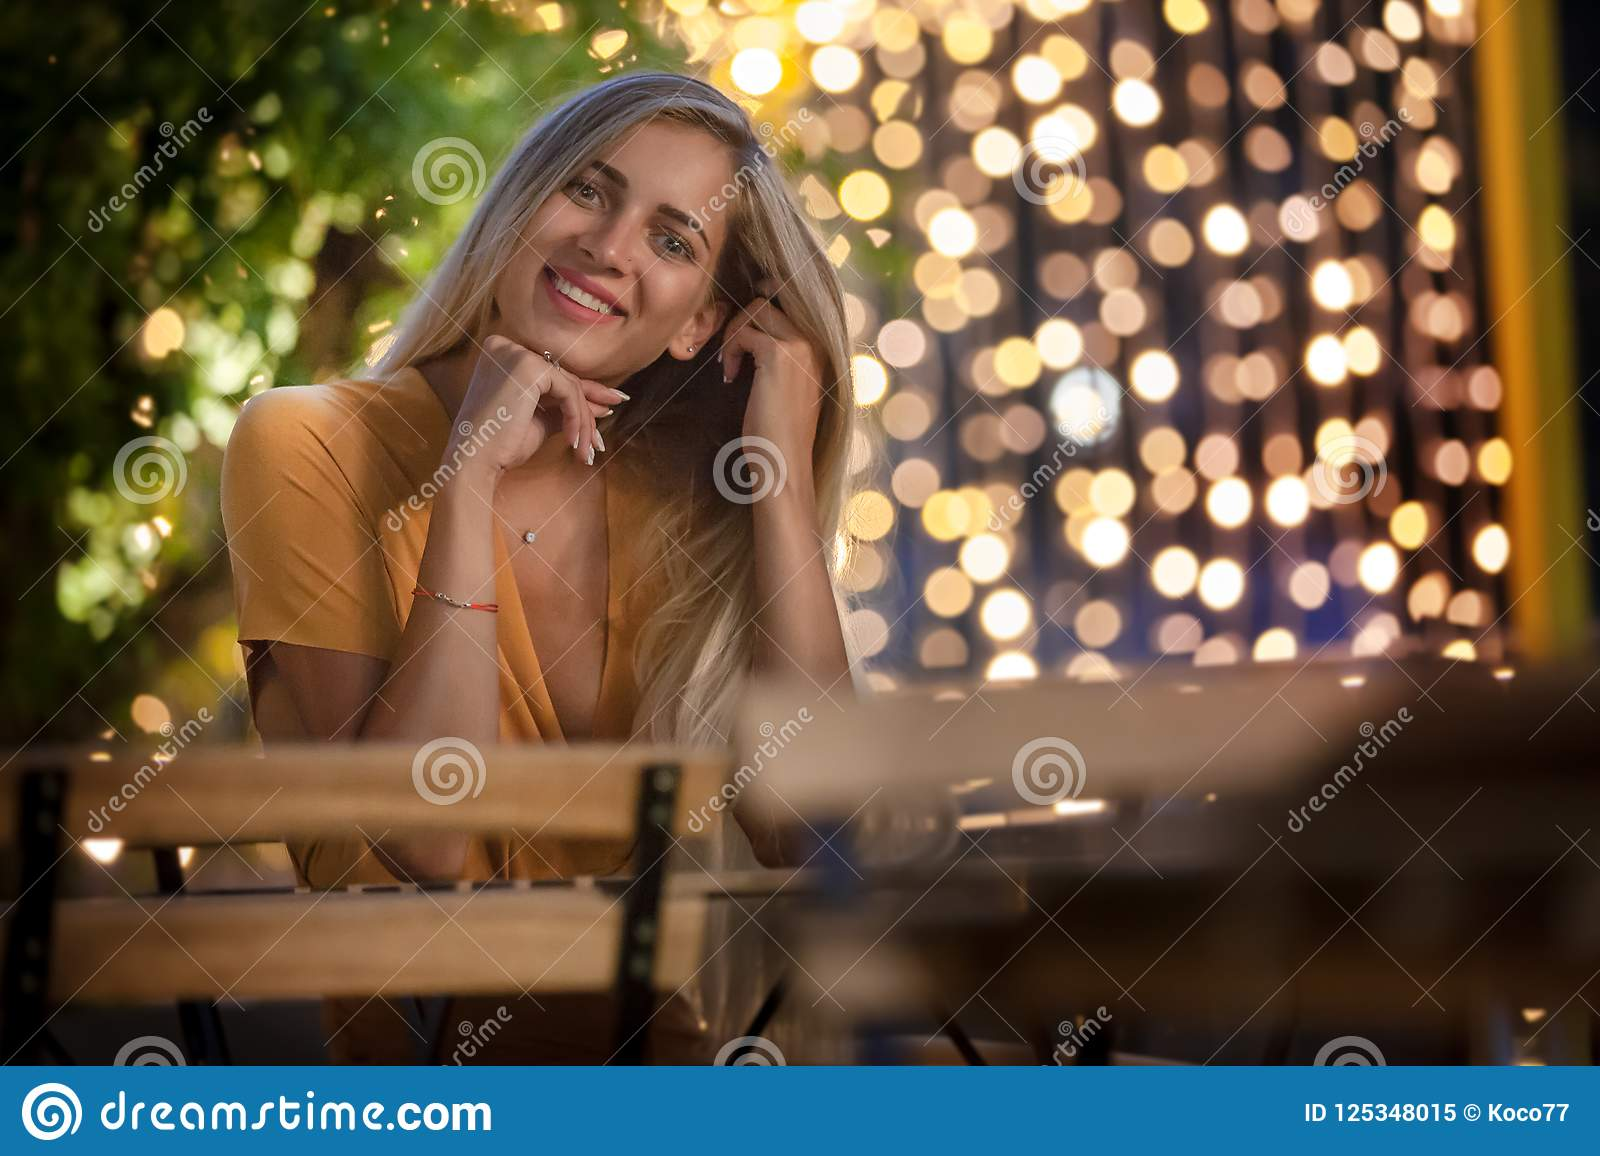 Smiling blonde young woman sitting, with evening fairy lights on the background.